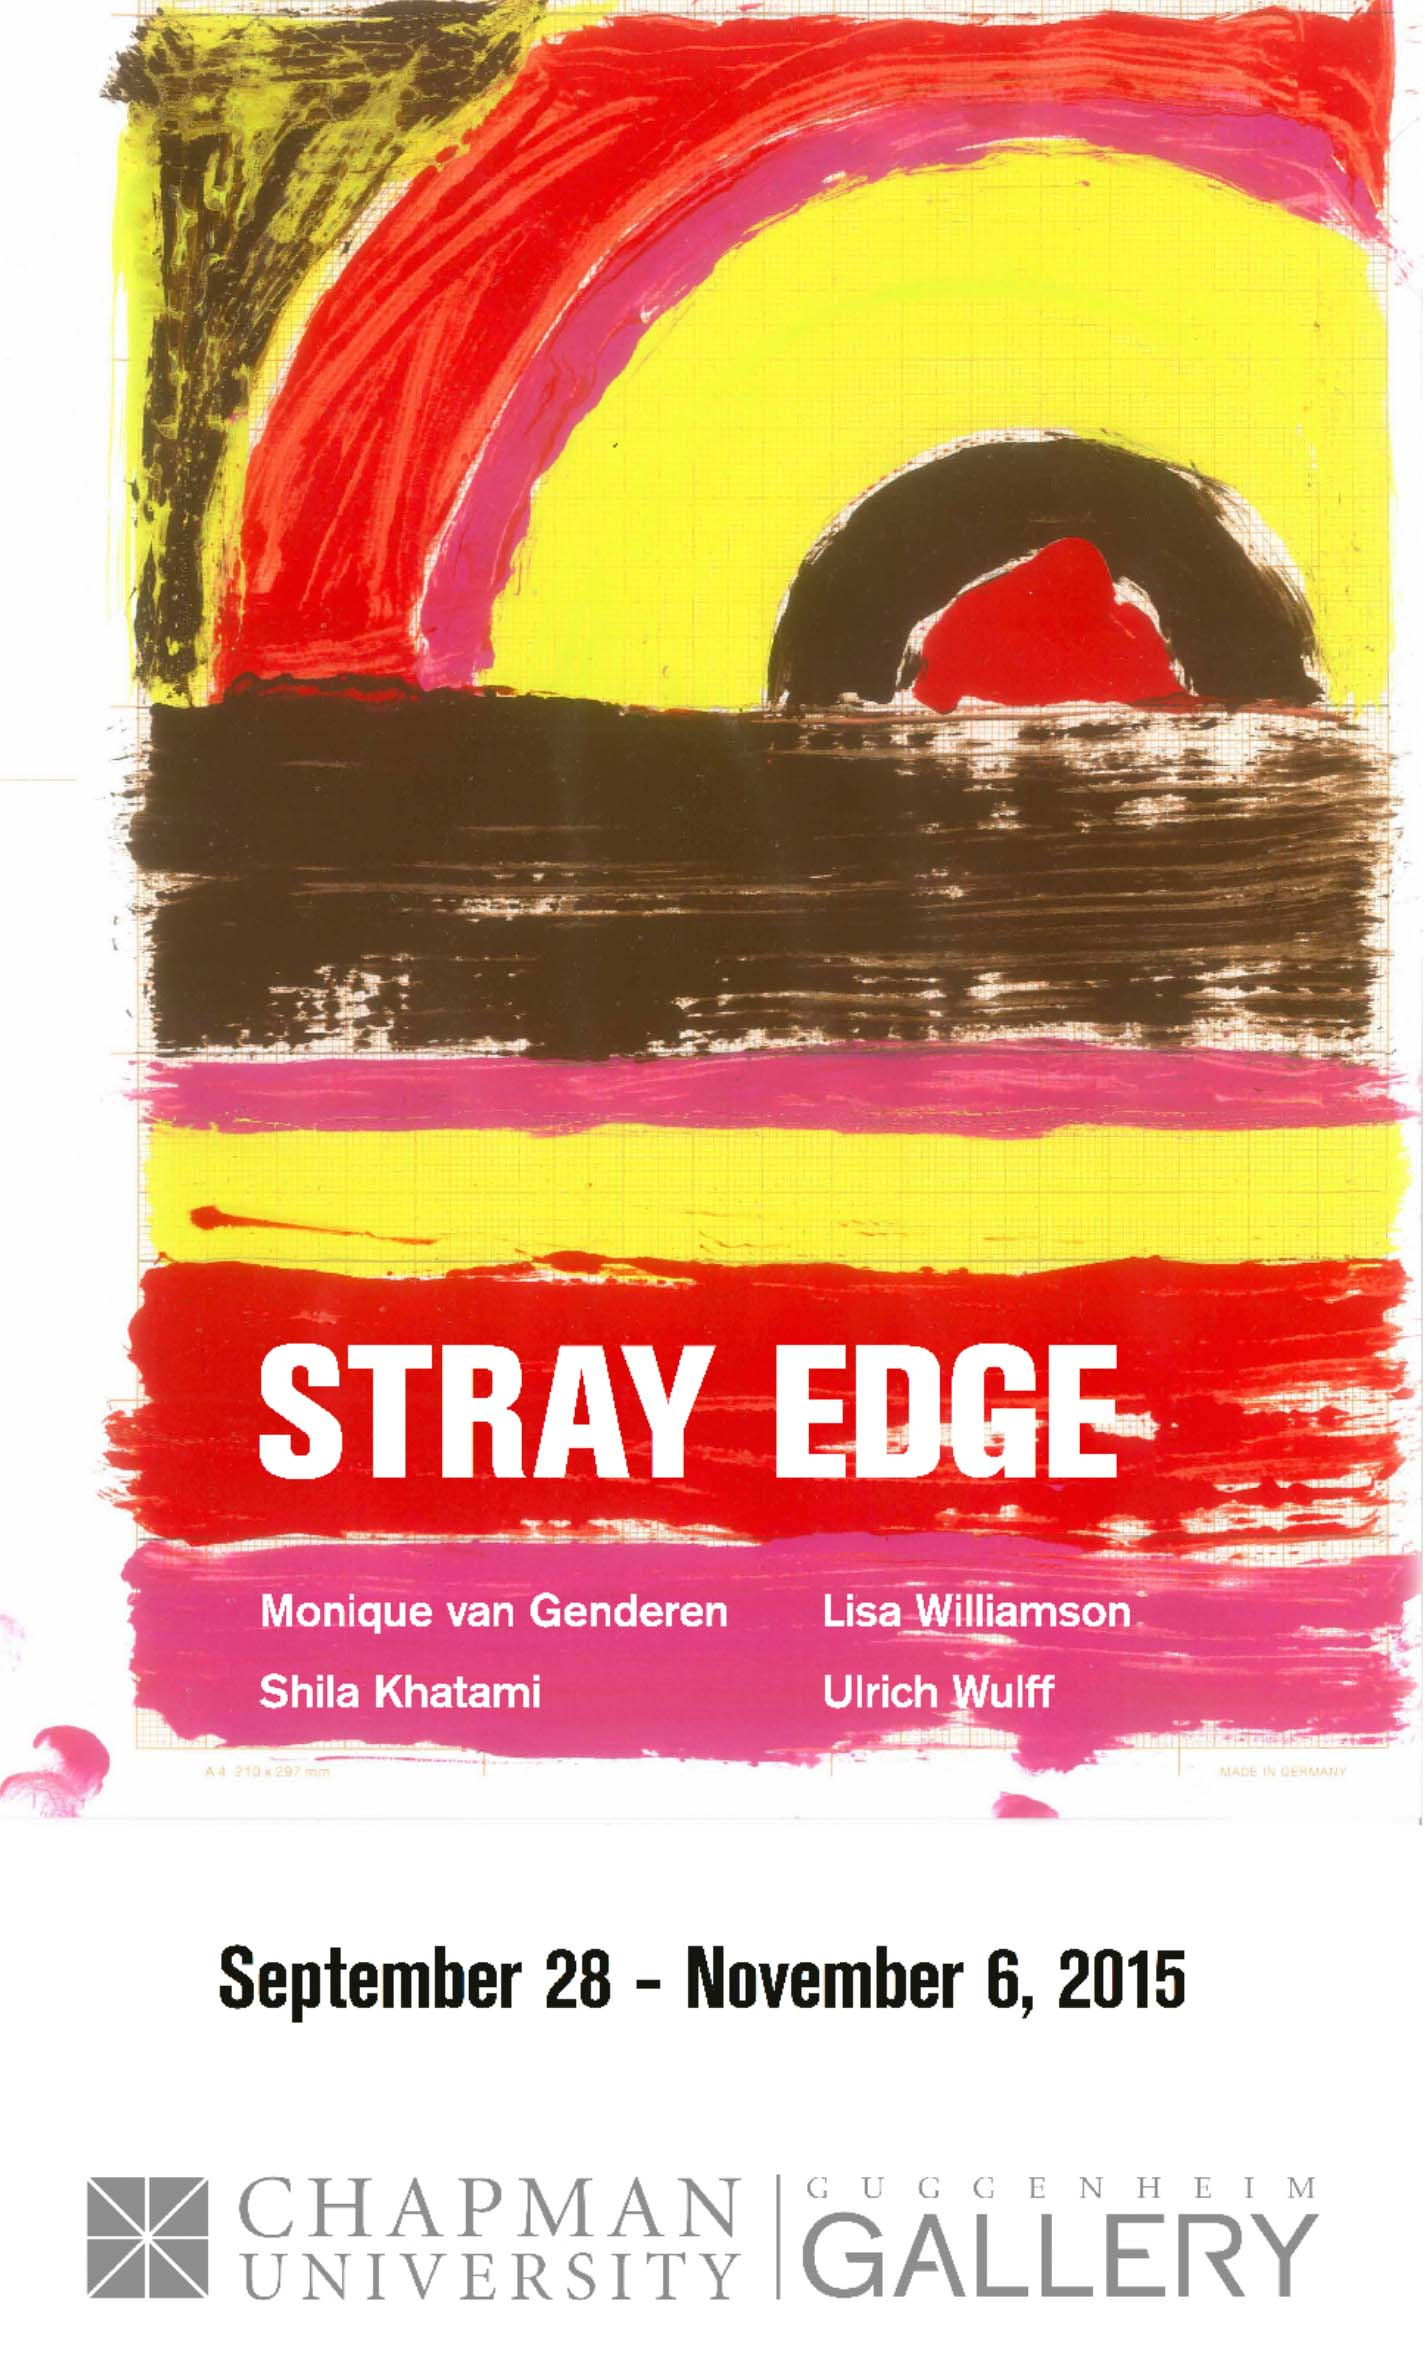 Flyer for Stray Edge